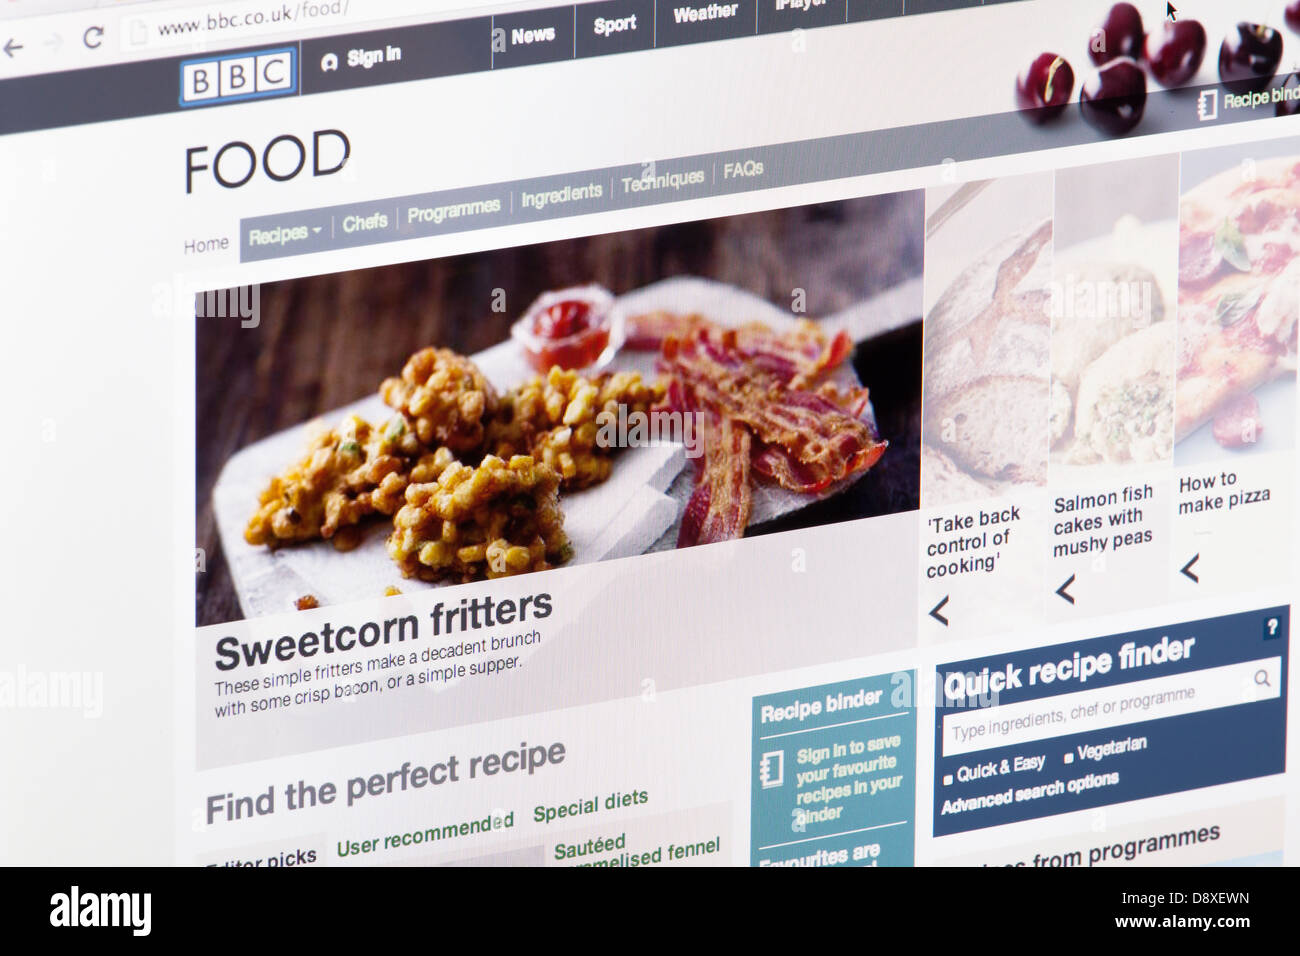 BBC Food online recipes Website or web page on a laptop screen or computer monitor - Stock Image